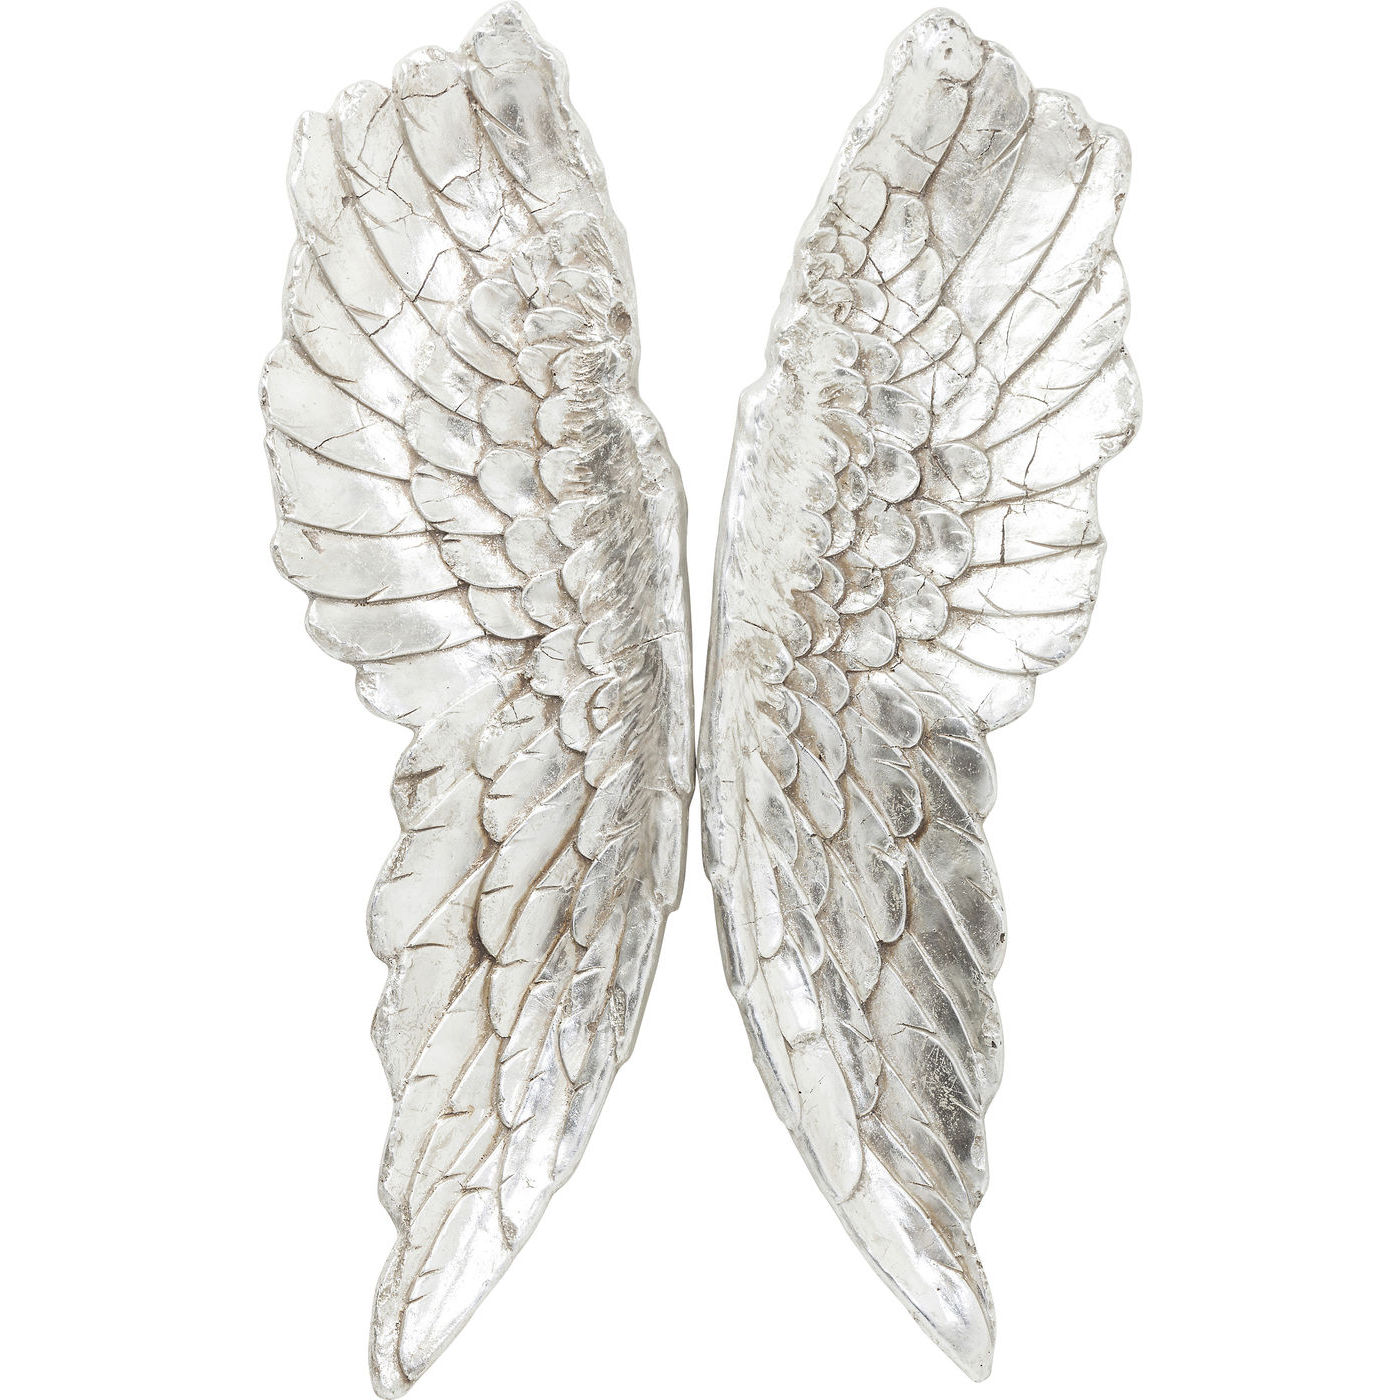 KARE DESIGN Angel Wings vgdekoration - slv polyresin (106x61)